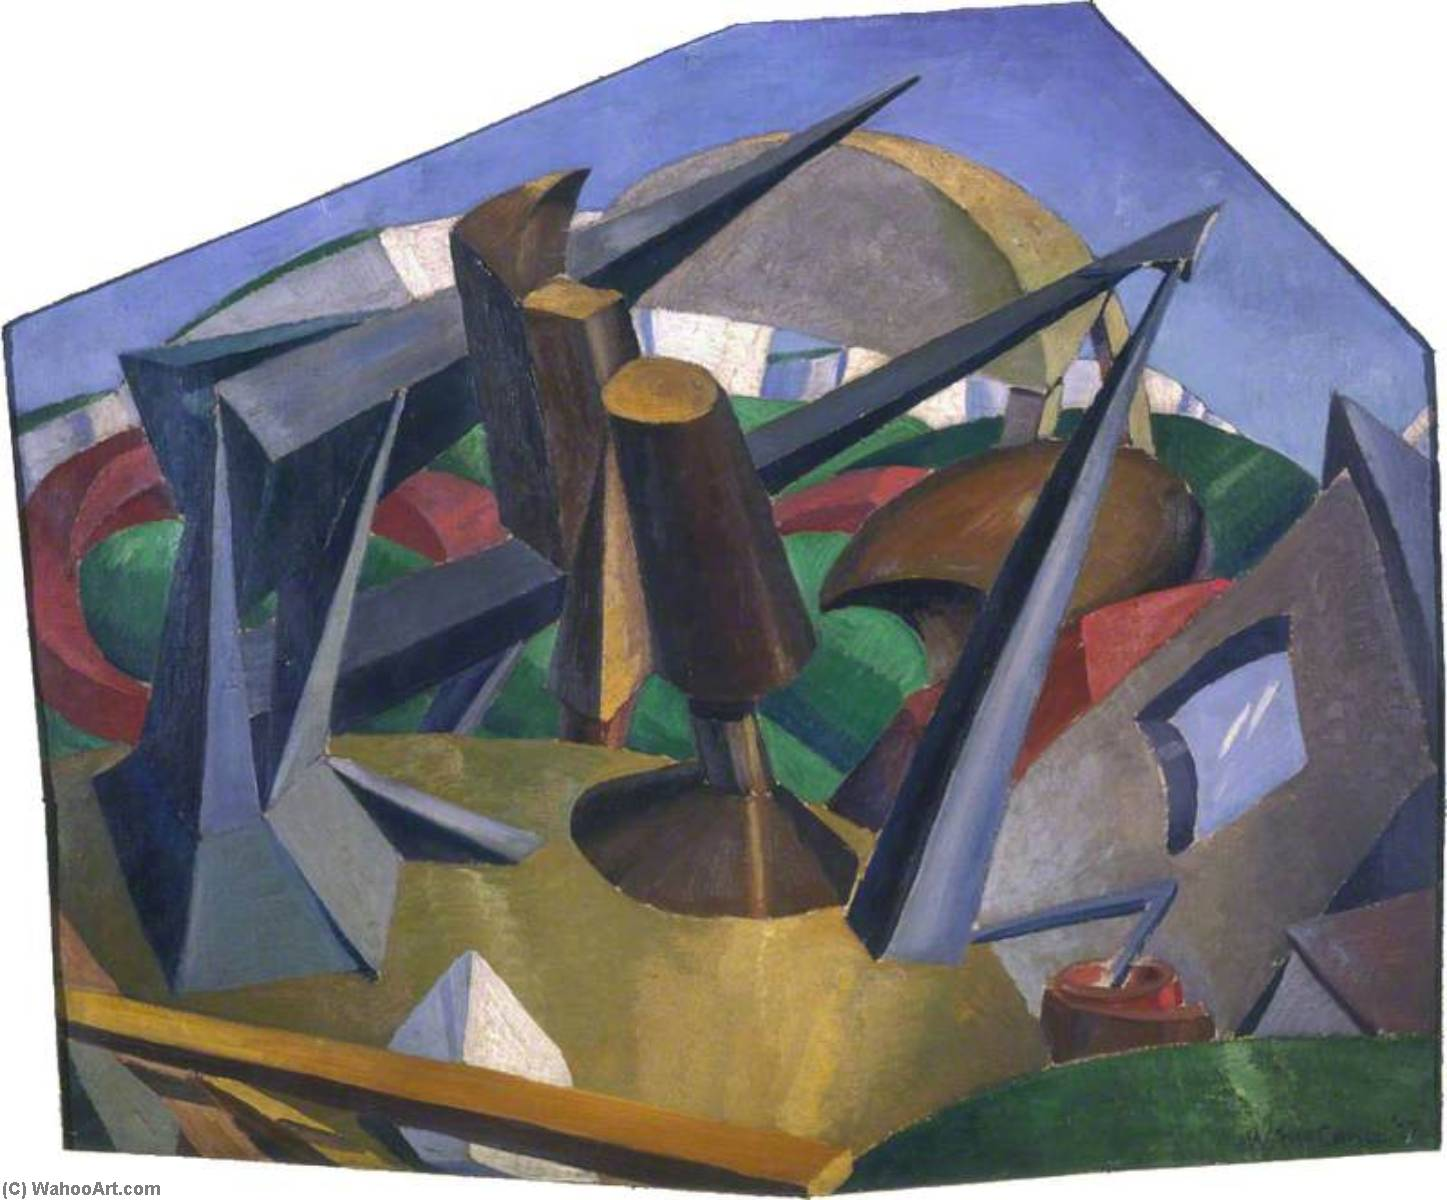 Buy Museum Art Reproductions | Heavy Structures in a Landscape Setting, 1922 by William Mccance | WahooArt.com